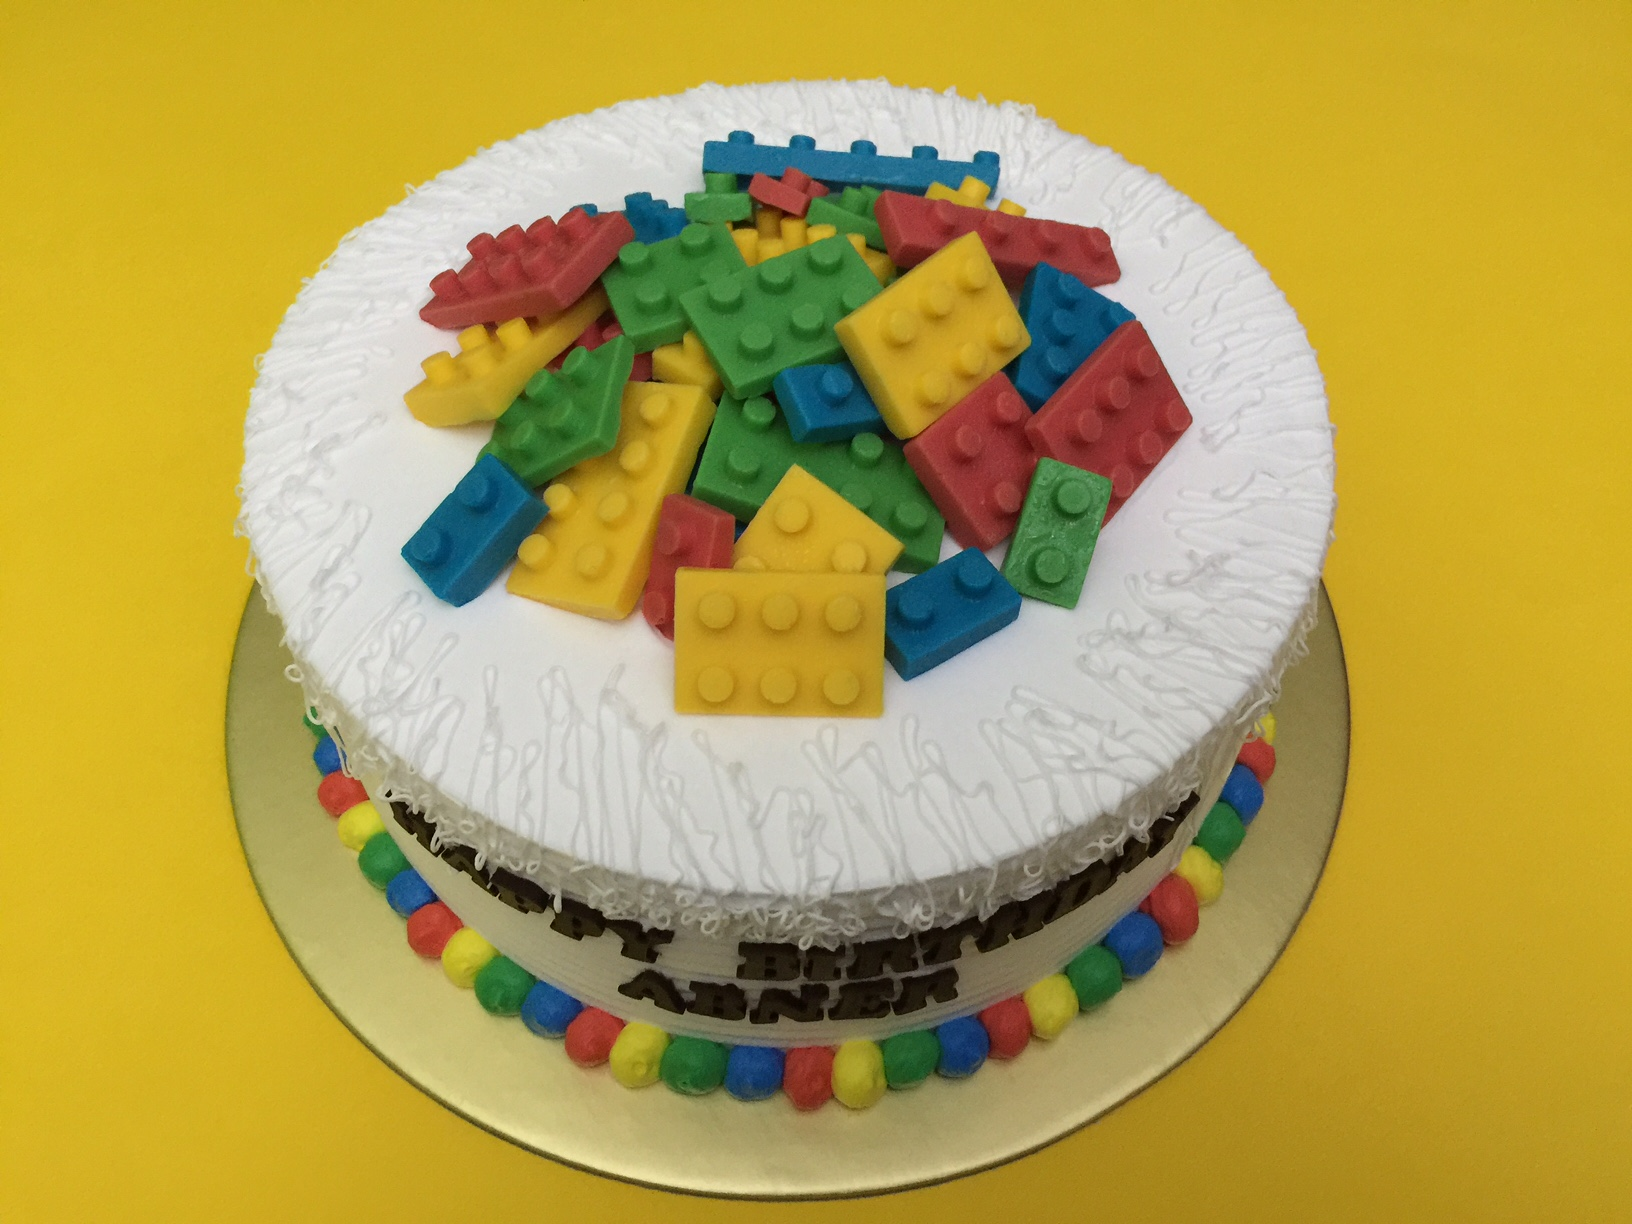 Lego Blocks Cake Design : Lego Cakes Singapore Favourite toy ever on a cake